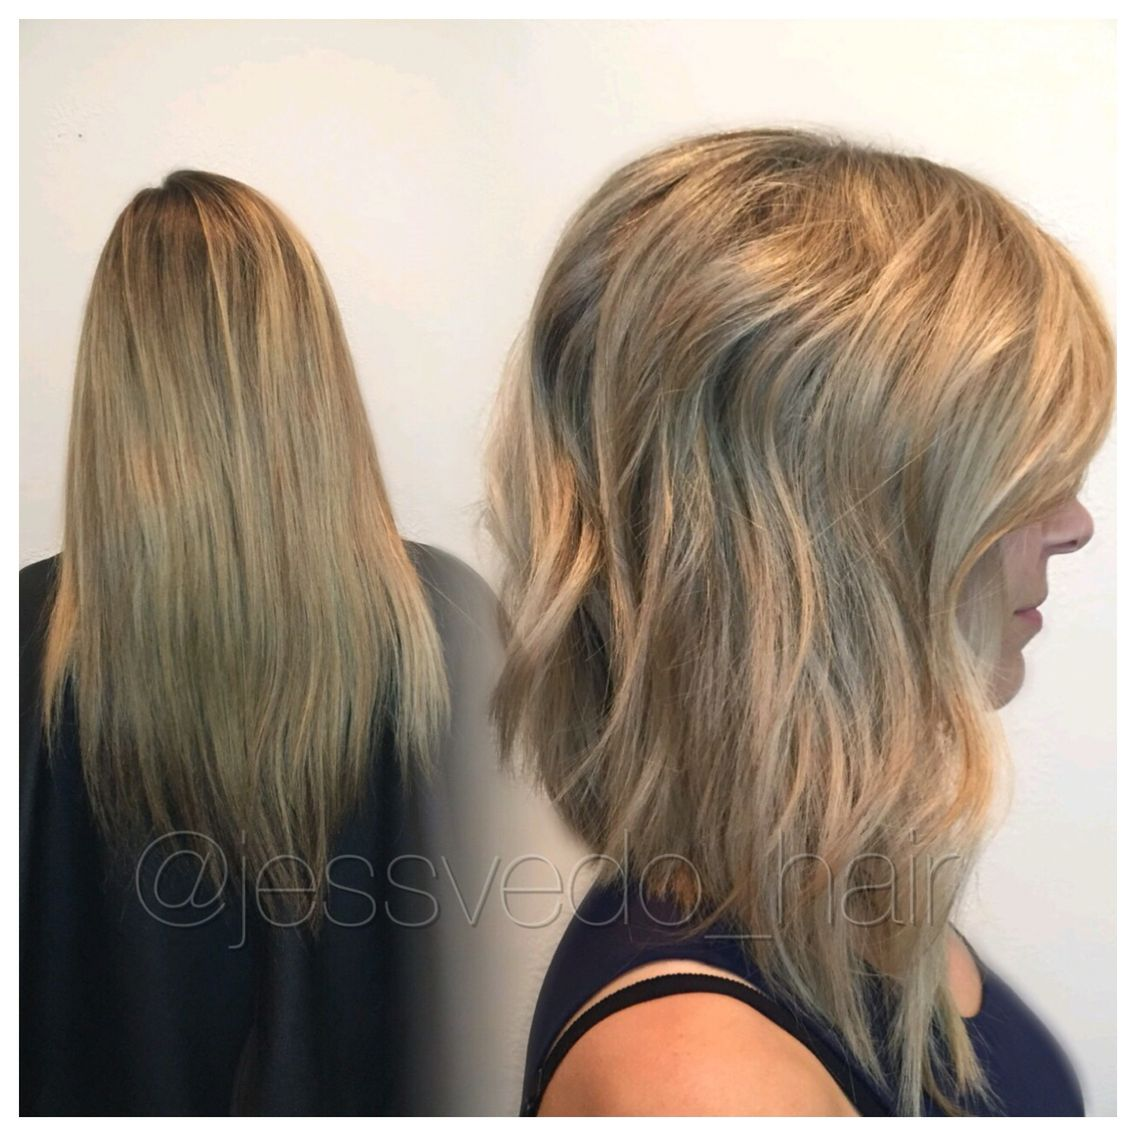 Blonde Textured A Line Bob With Long Layers And A Beach Wave Style